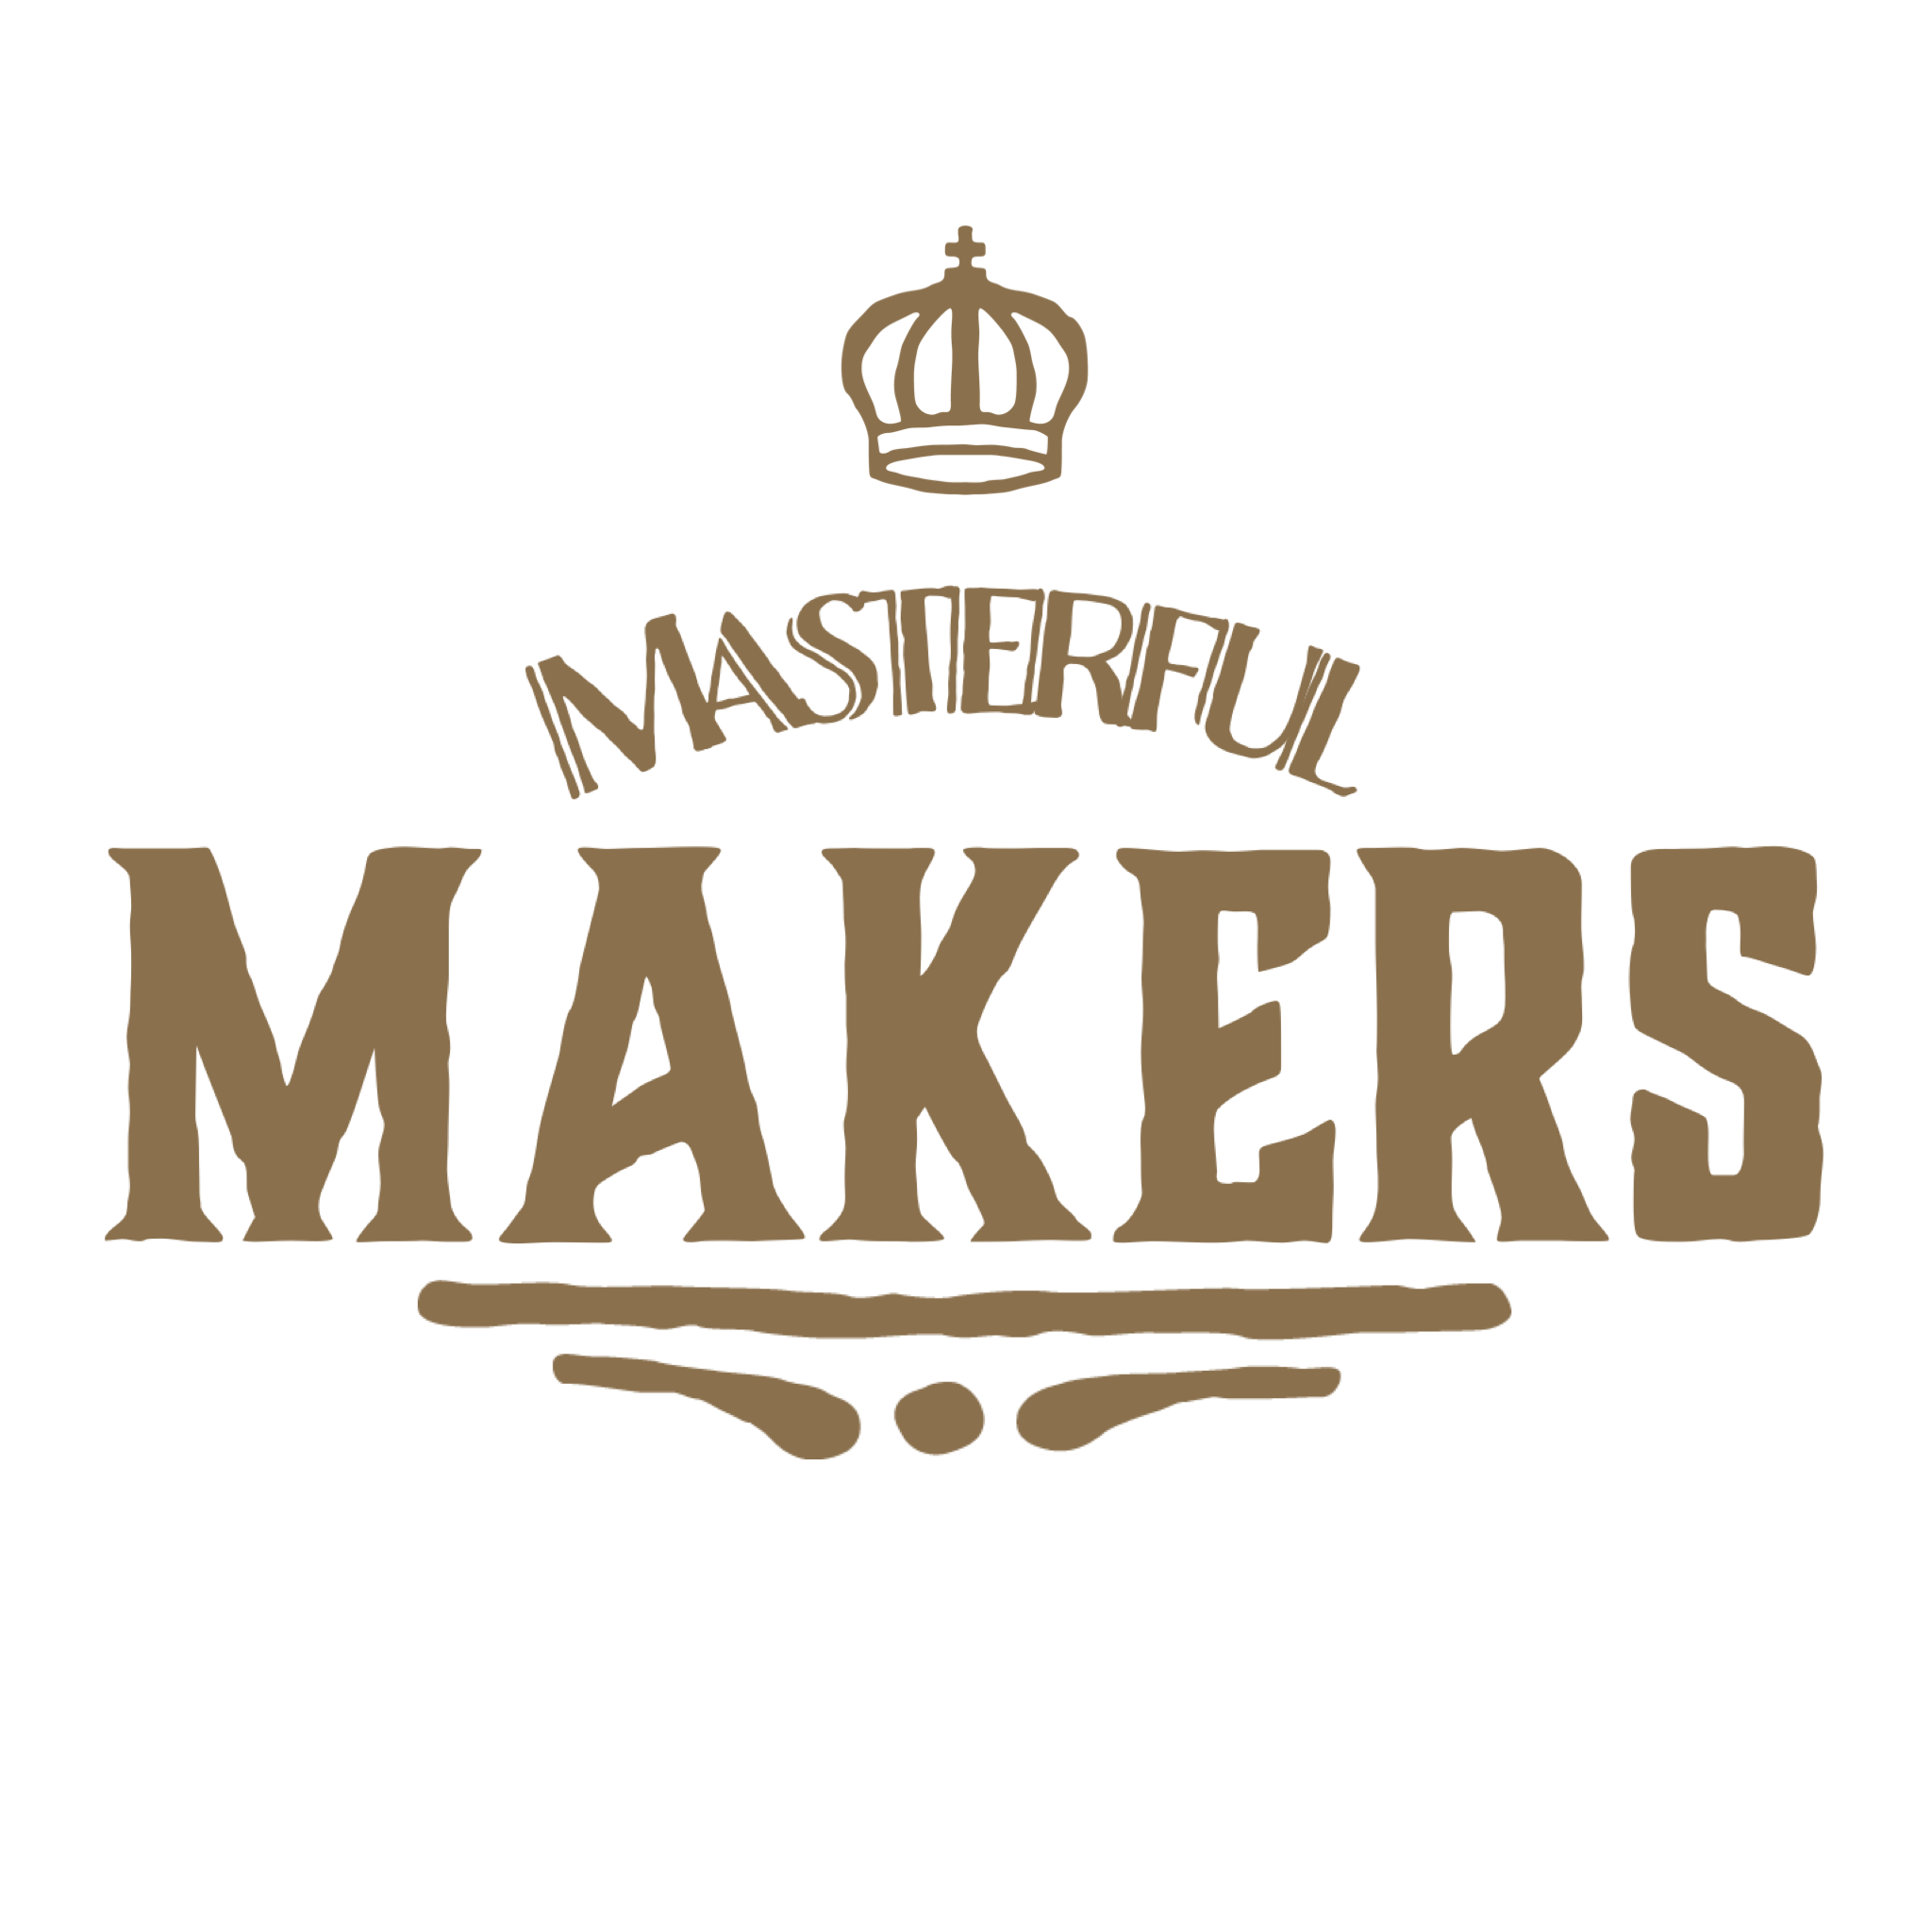 Masterful Makers - Jewellery & Leather Workshops